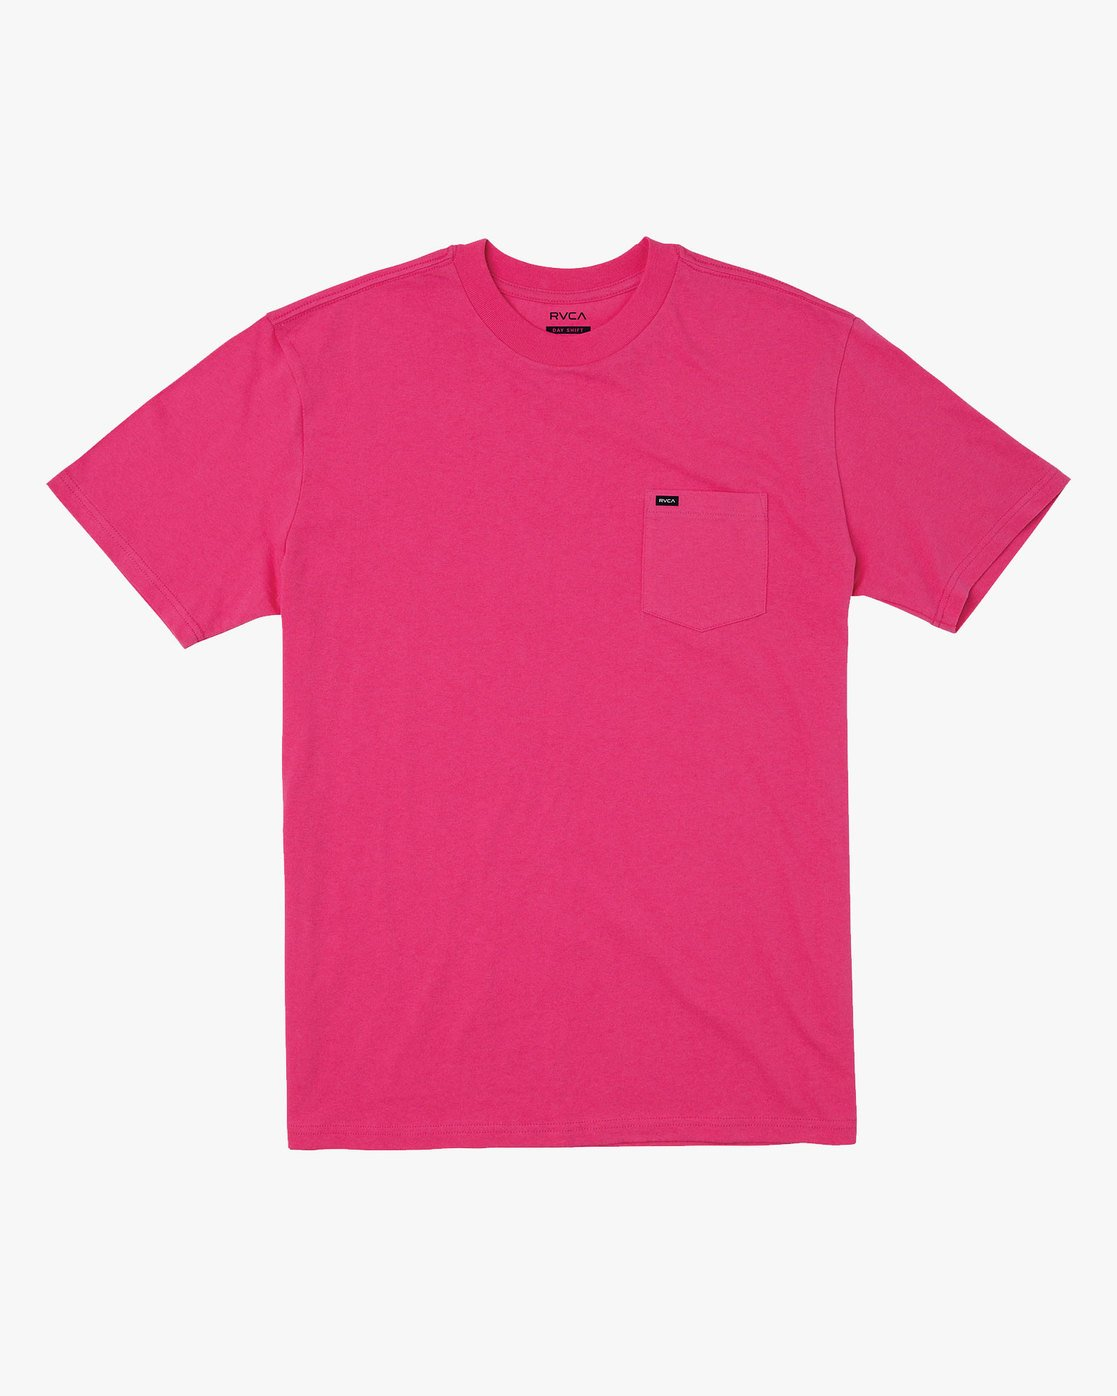 0 SOLO LABEL SHORT SLEEVE TEE TEE Pink M414VRSO RVCA